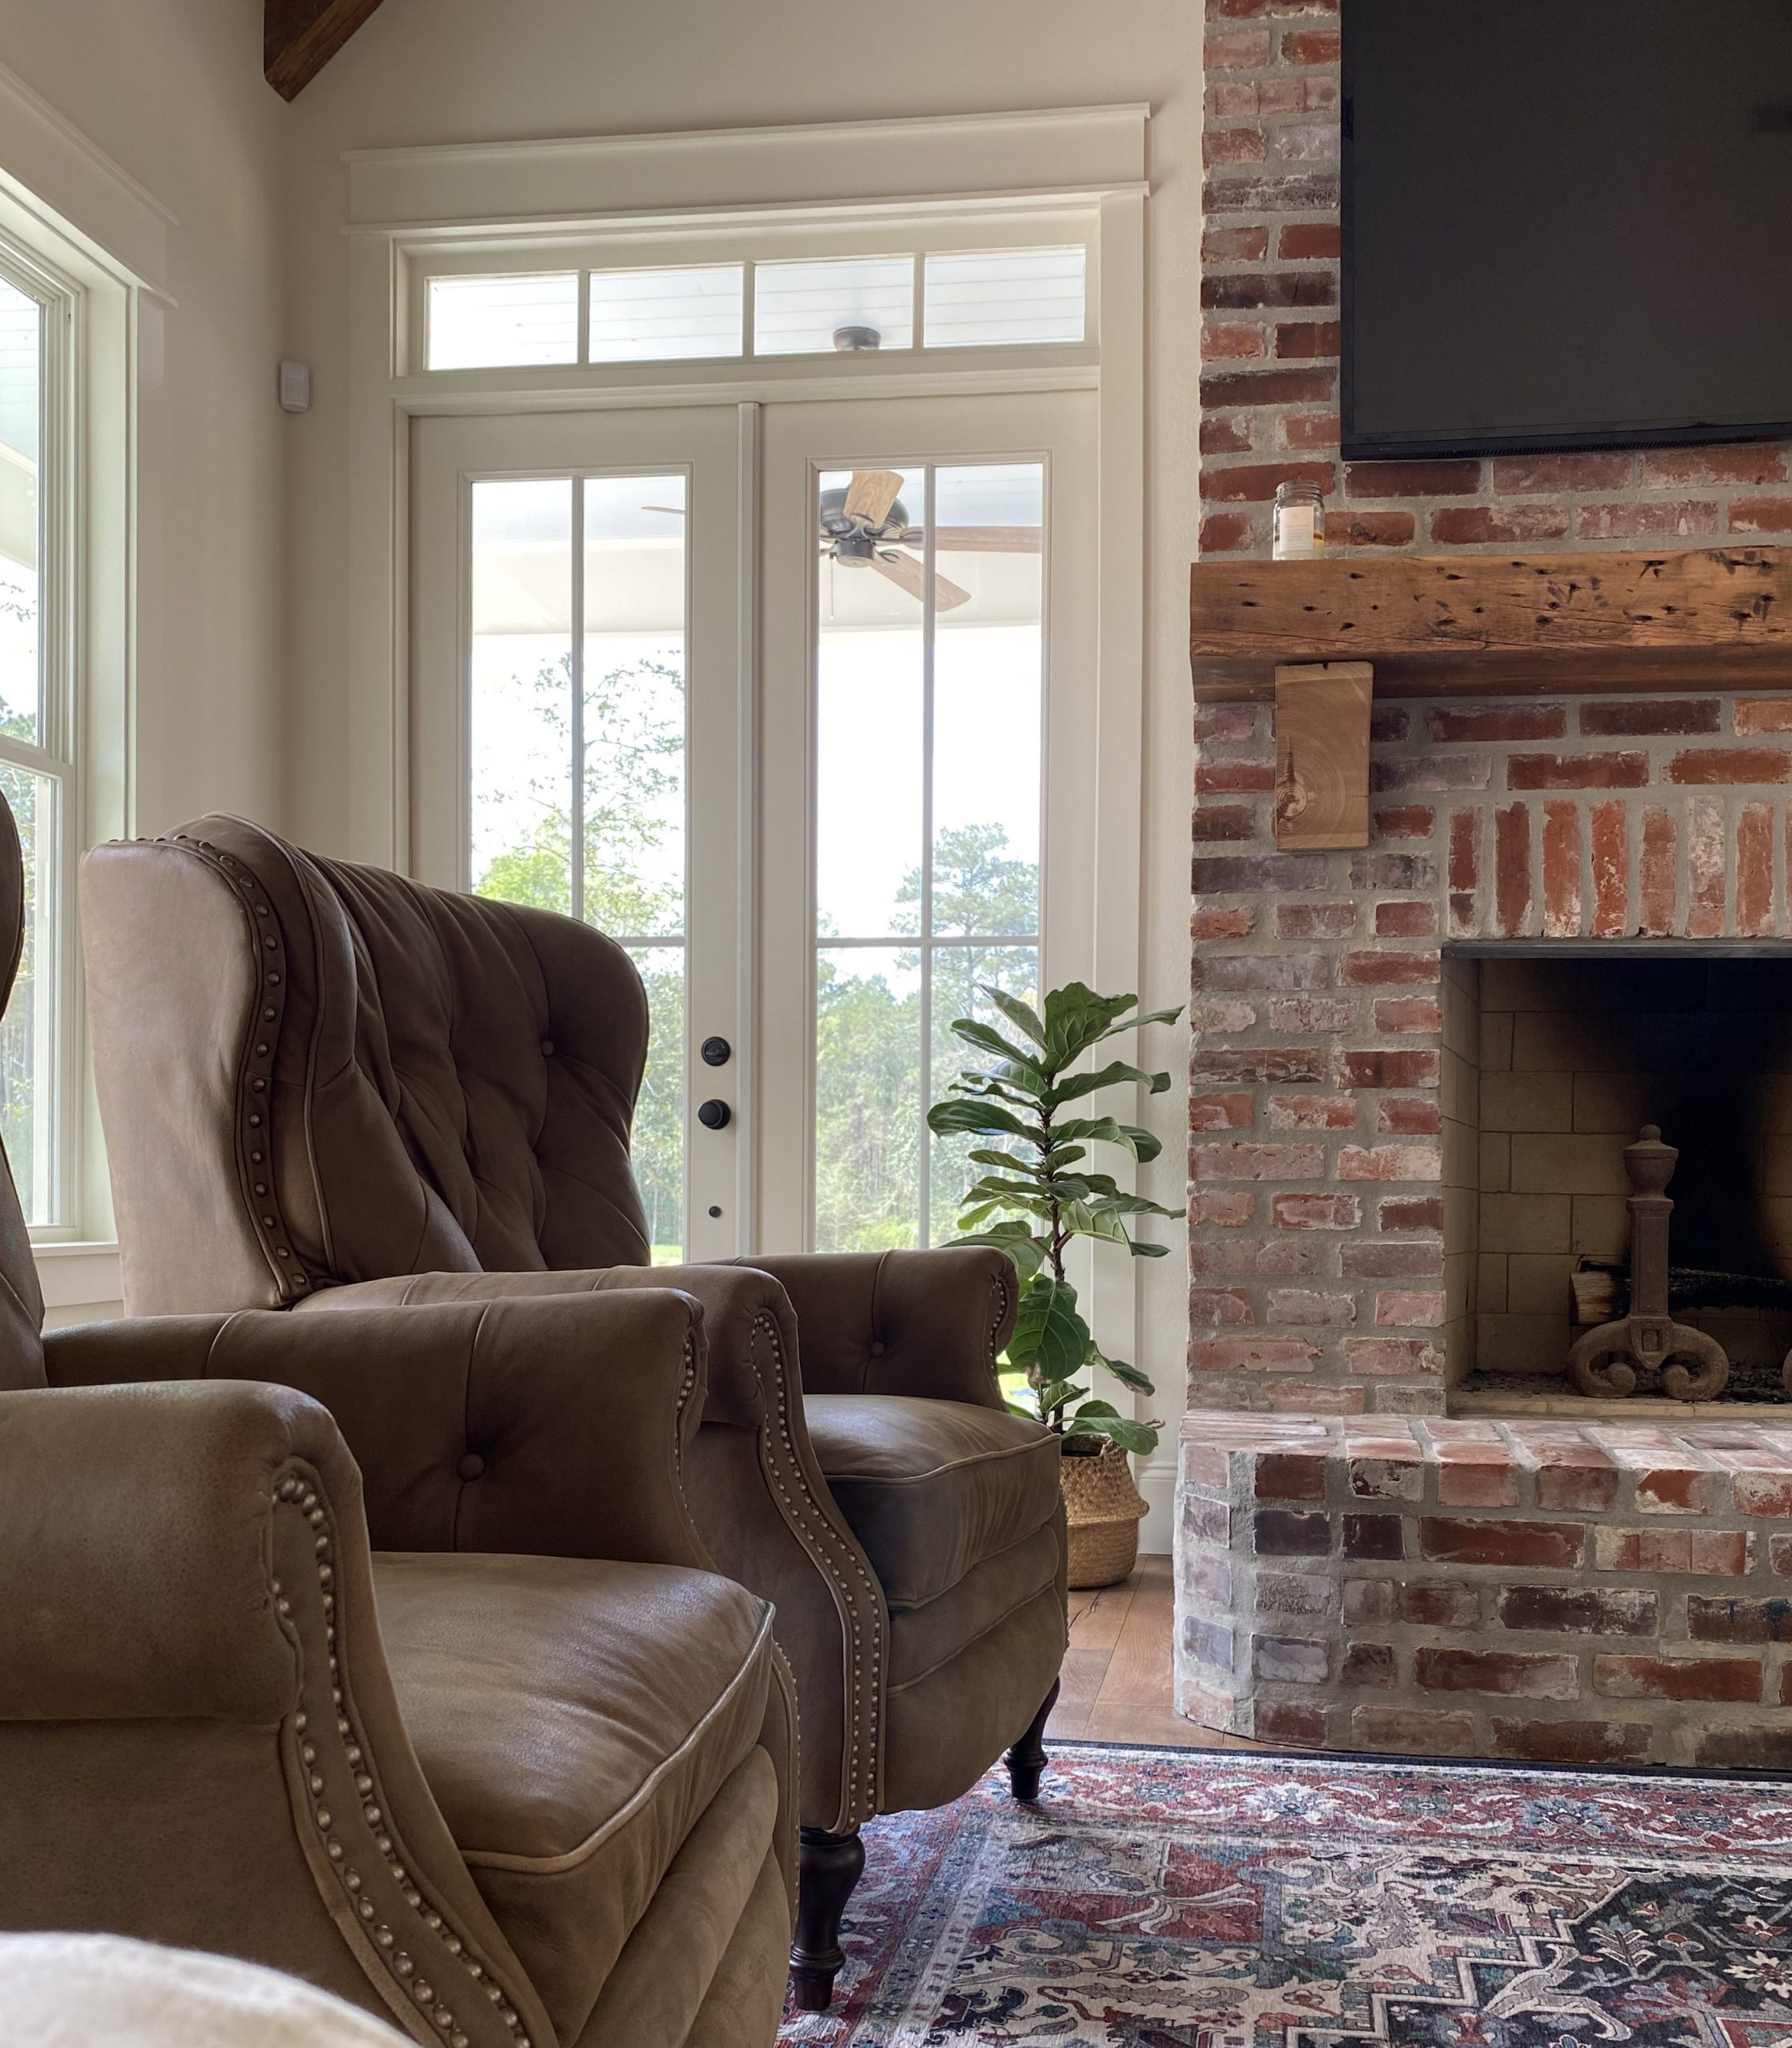 Home on magnolia hill, leather chairs, ruggable, brick fireplace, fiddle leaf fig, transom window, french doors